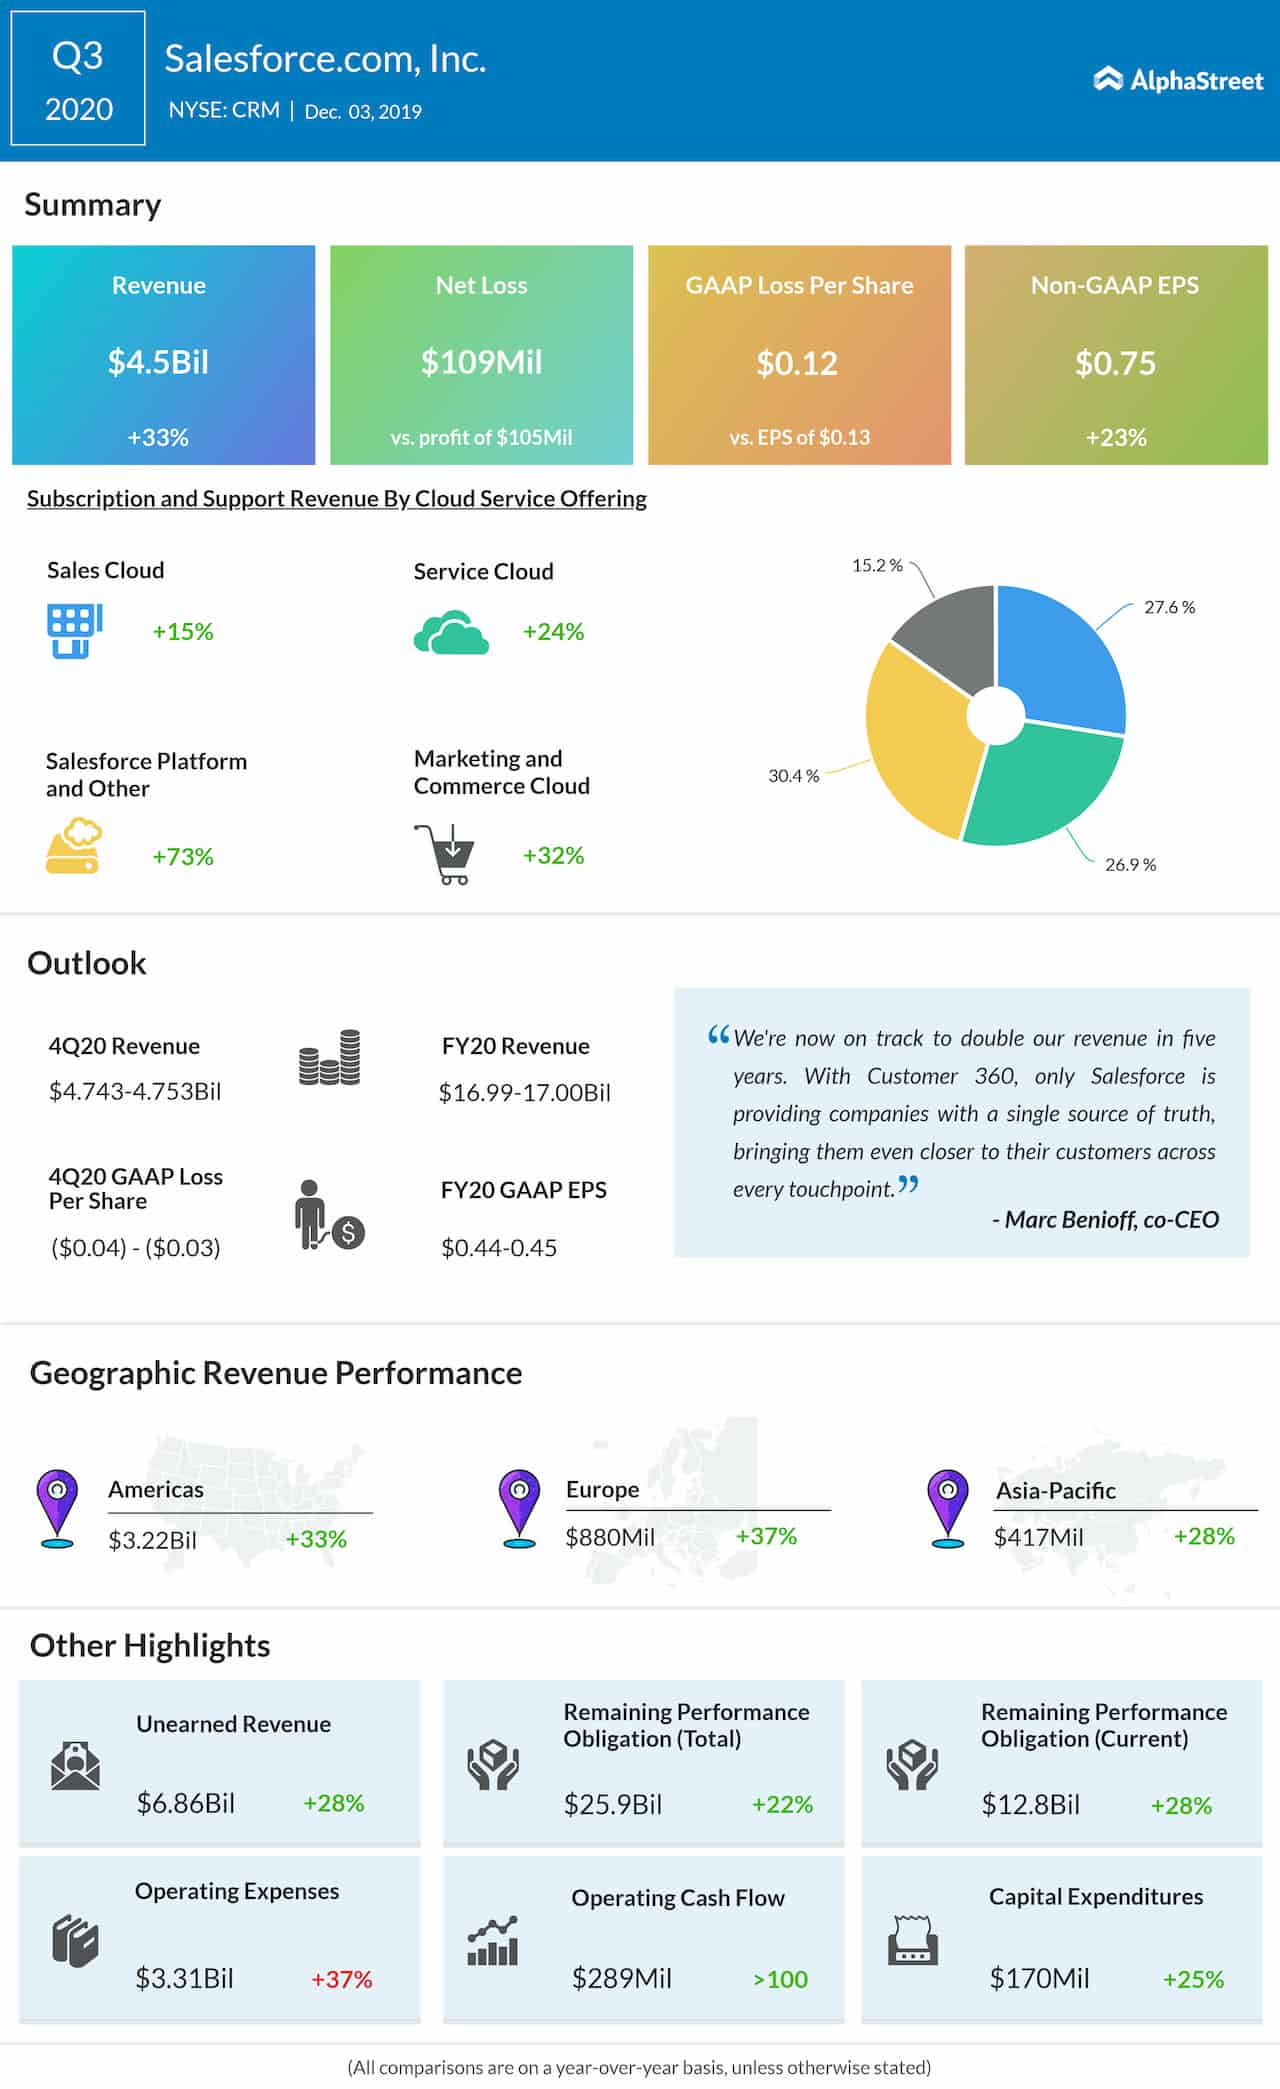 Salesforce (CRM) reports 33% growth in Q3 revenue